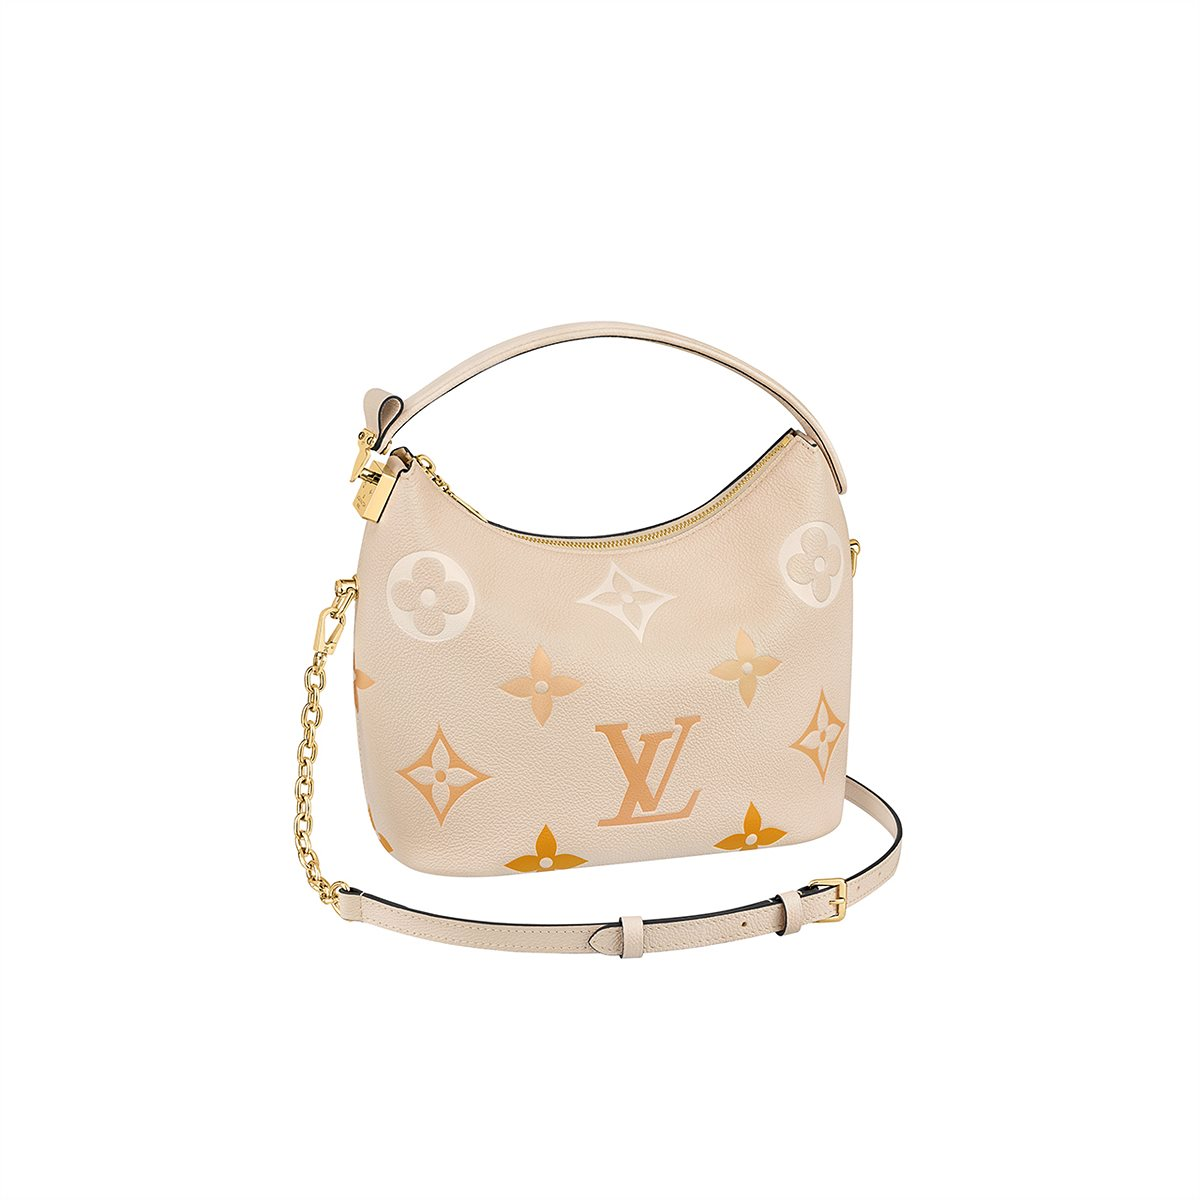 LV_Summer Capsule Collection 2021_Marshmallow